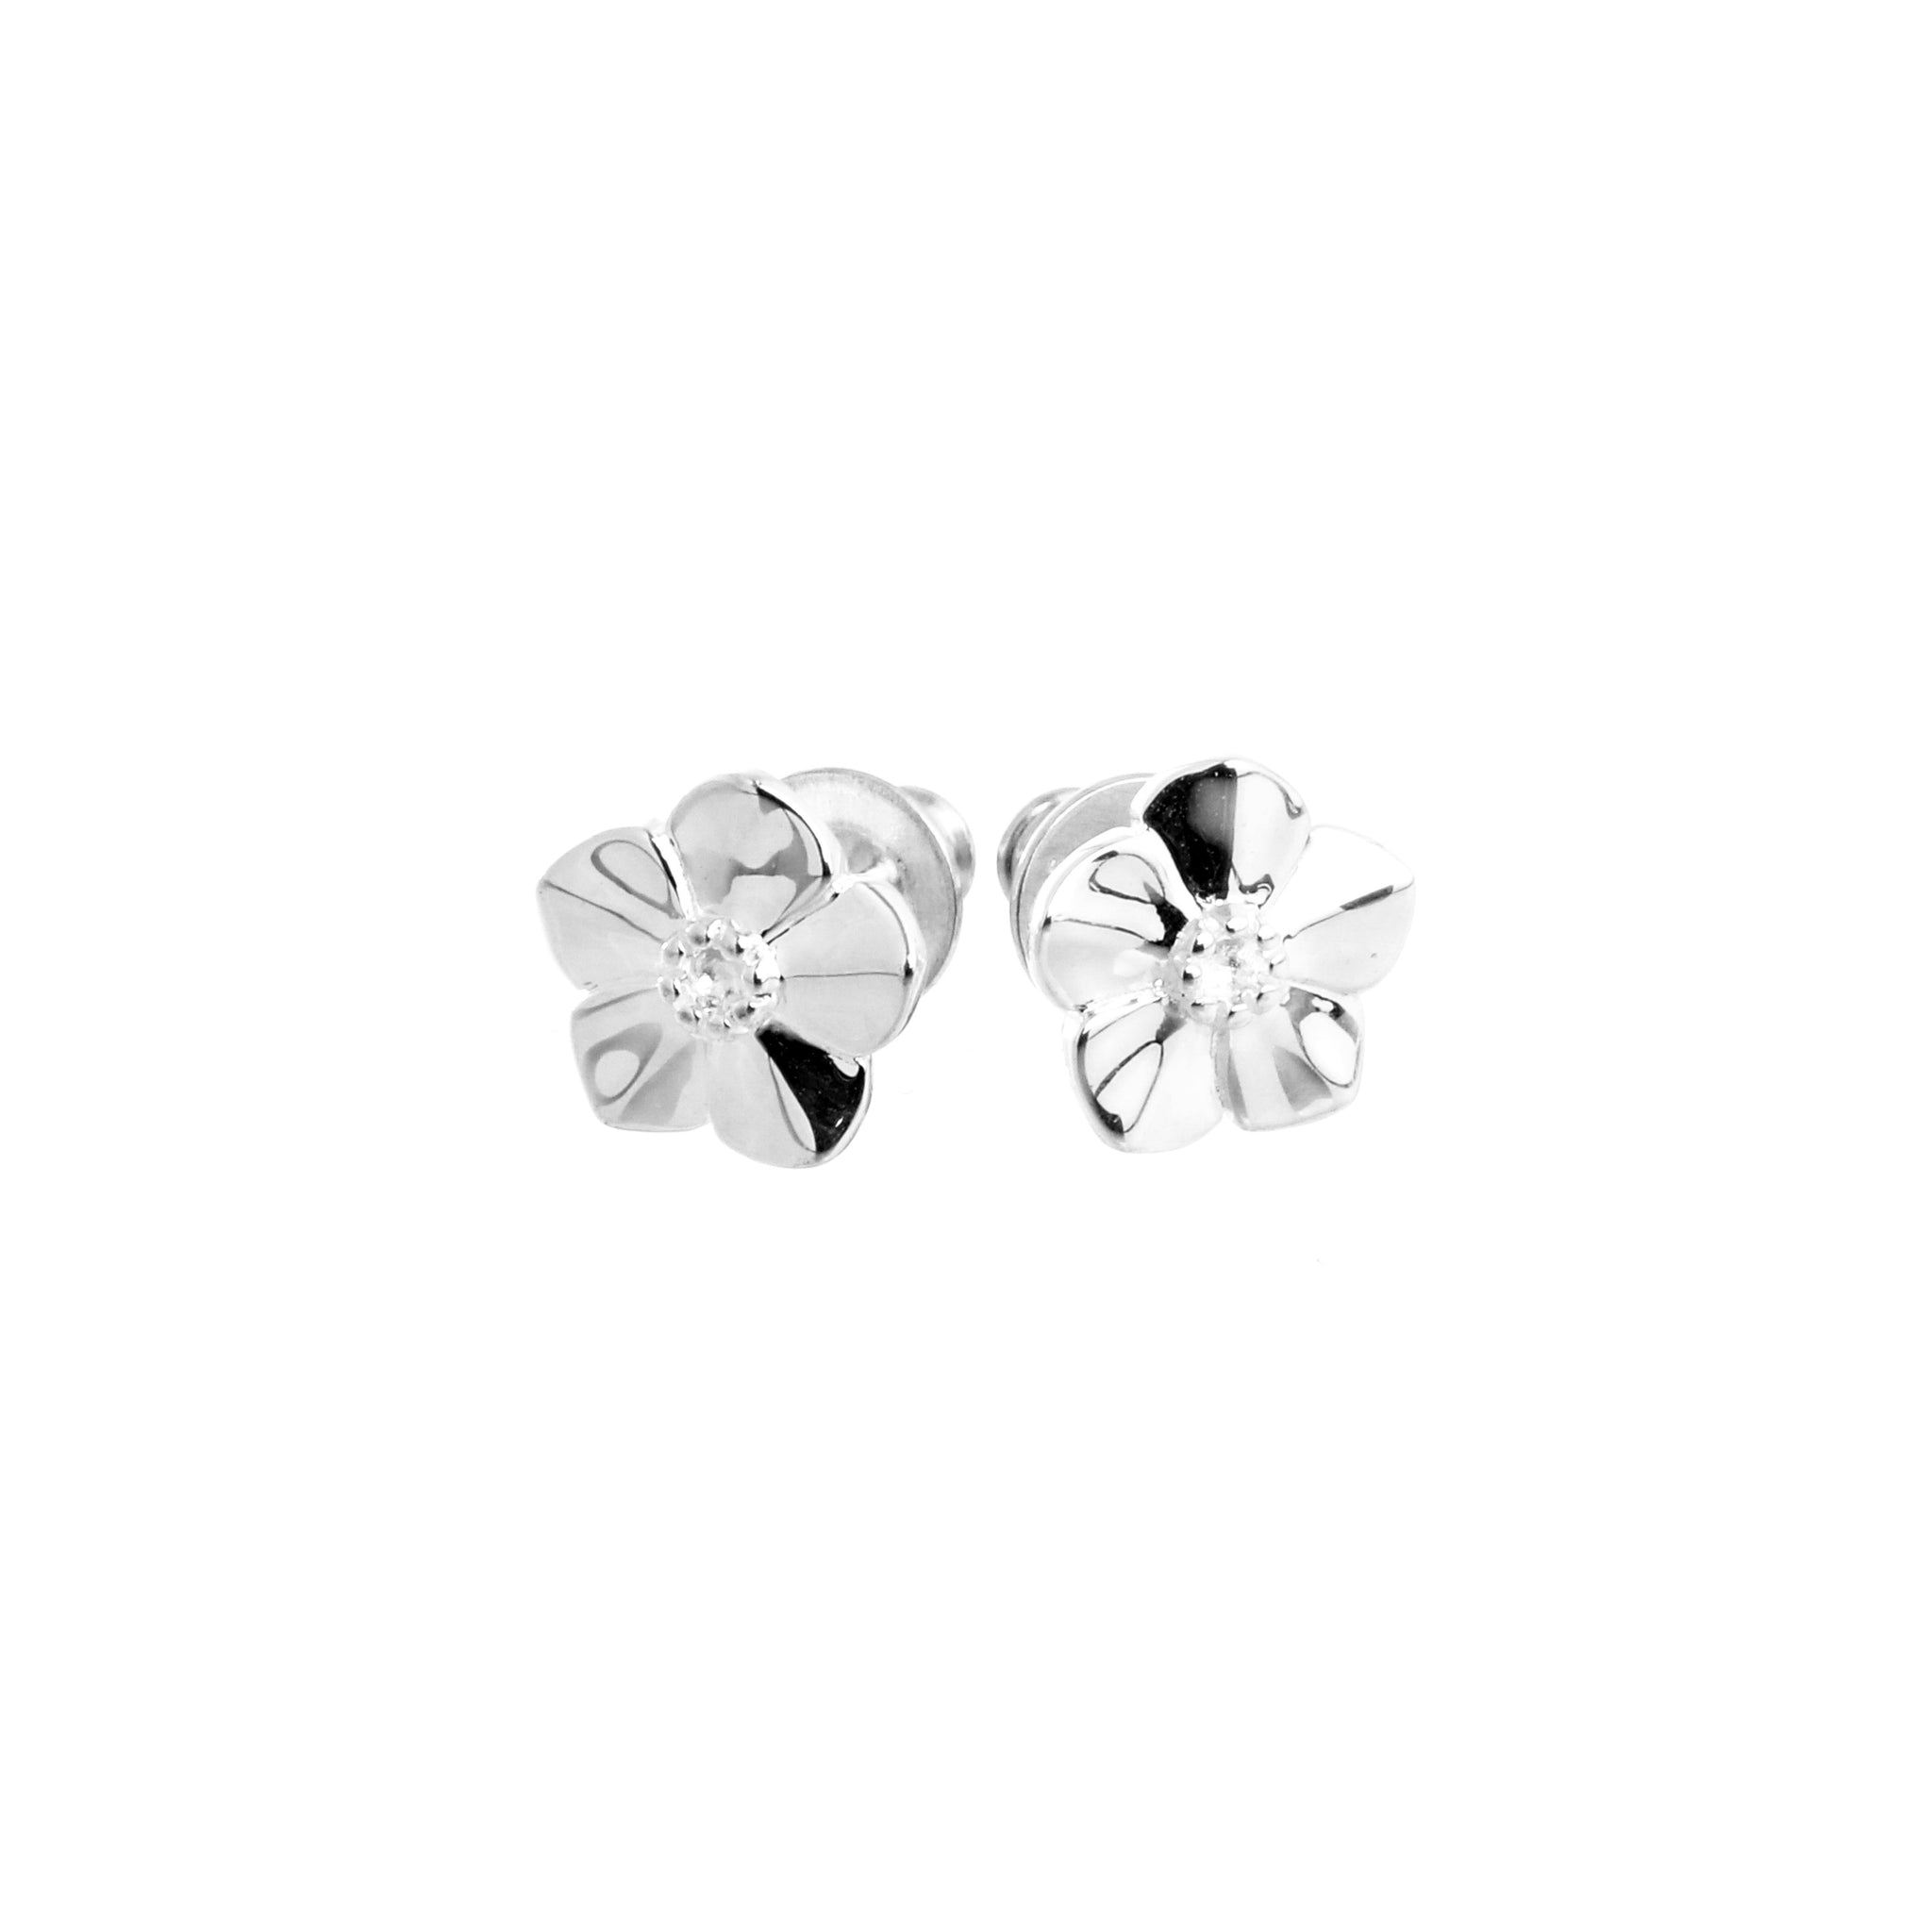 Forget-Me-Not Silver Stud Earrings